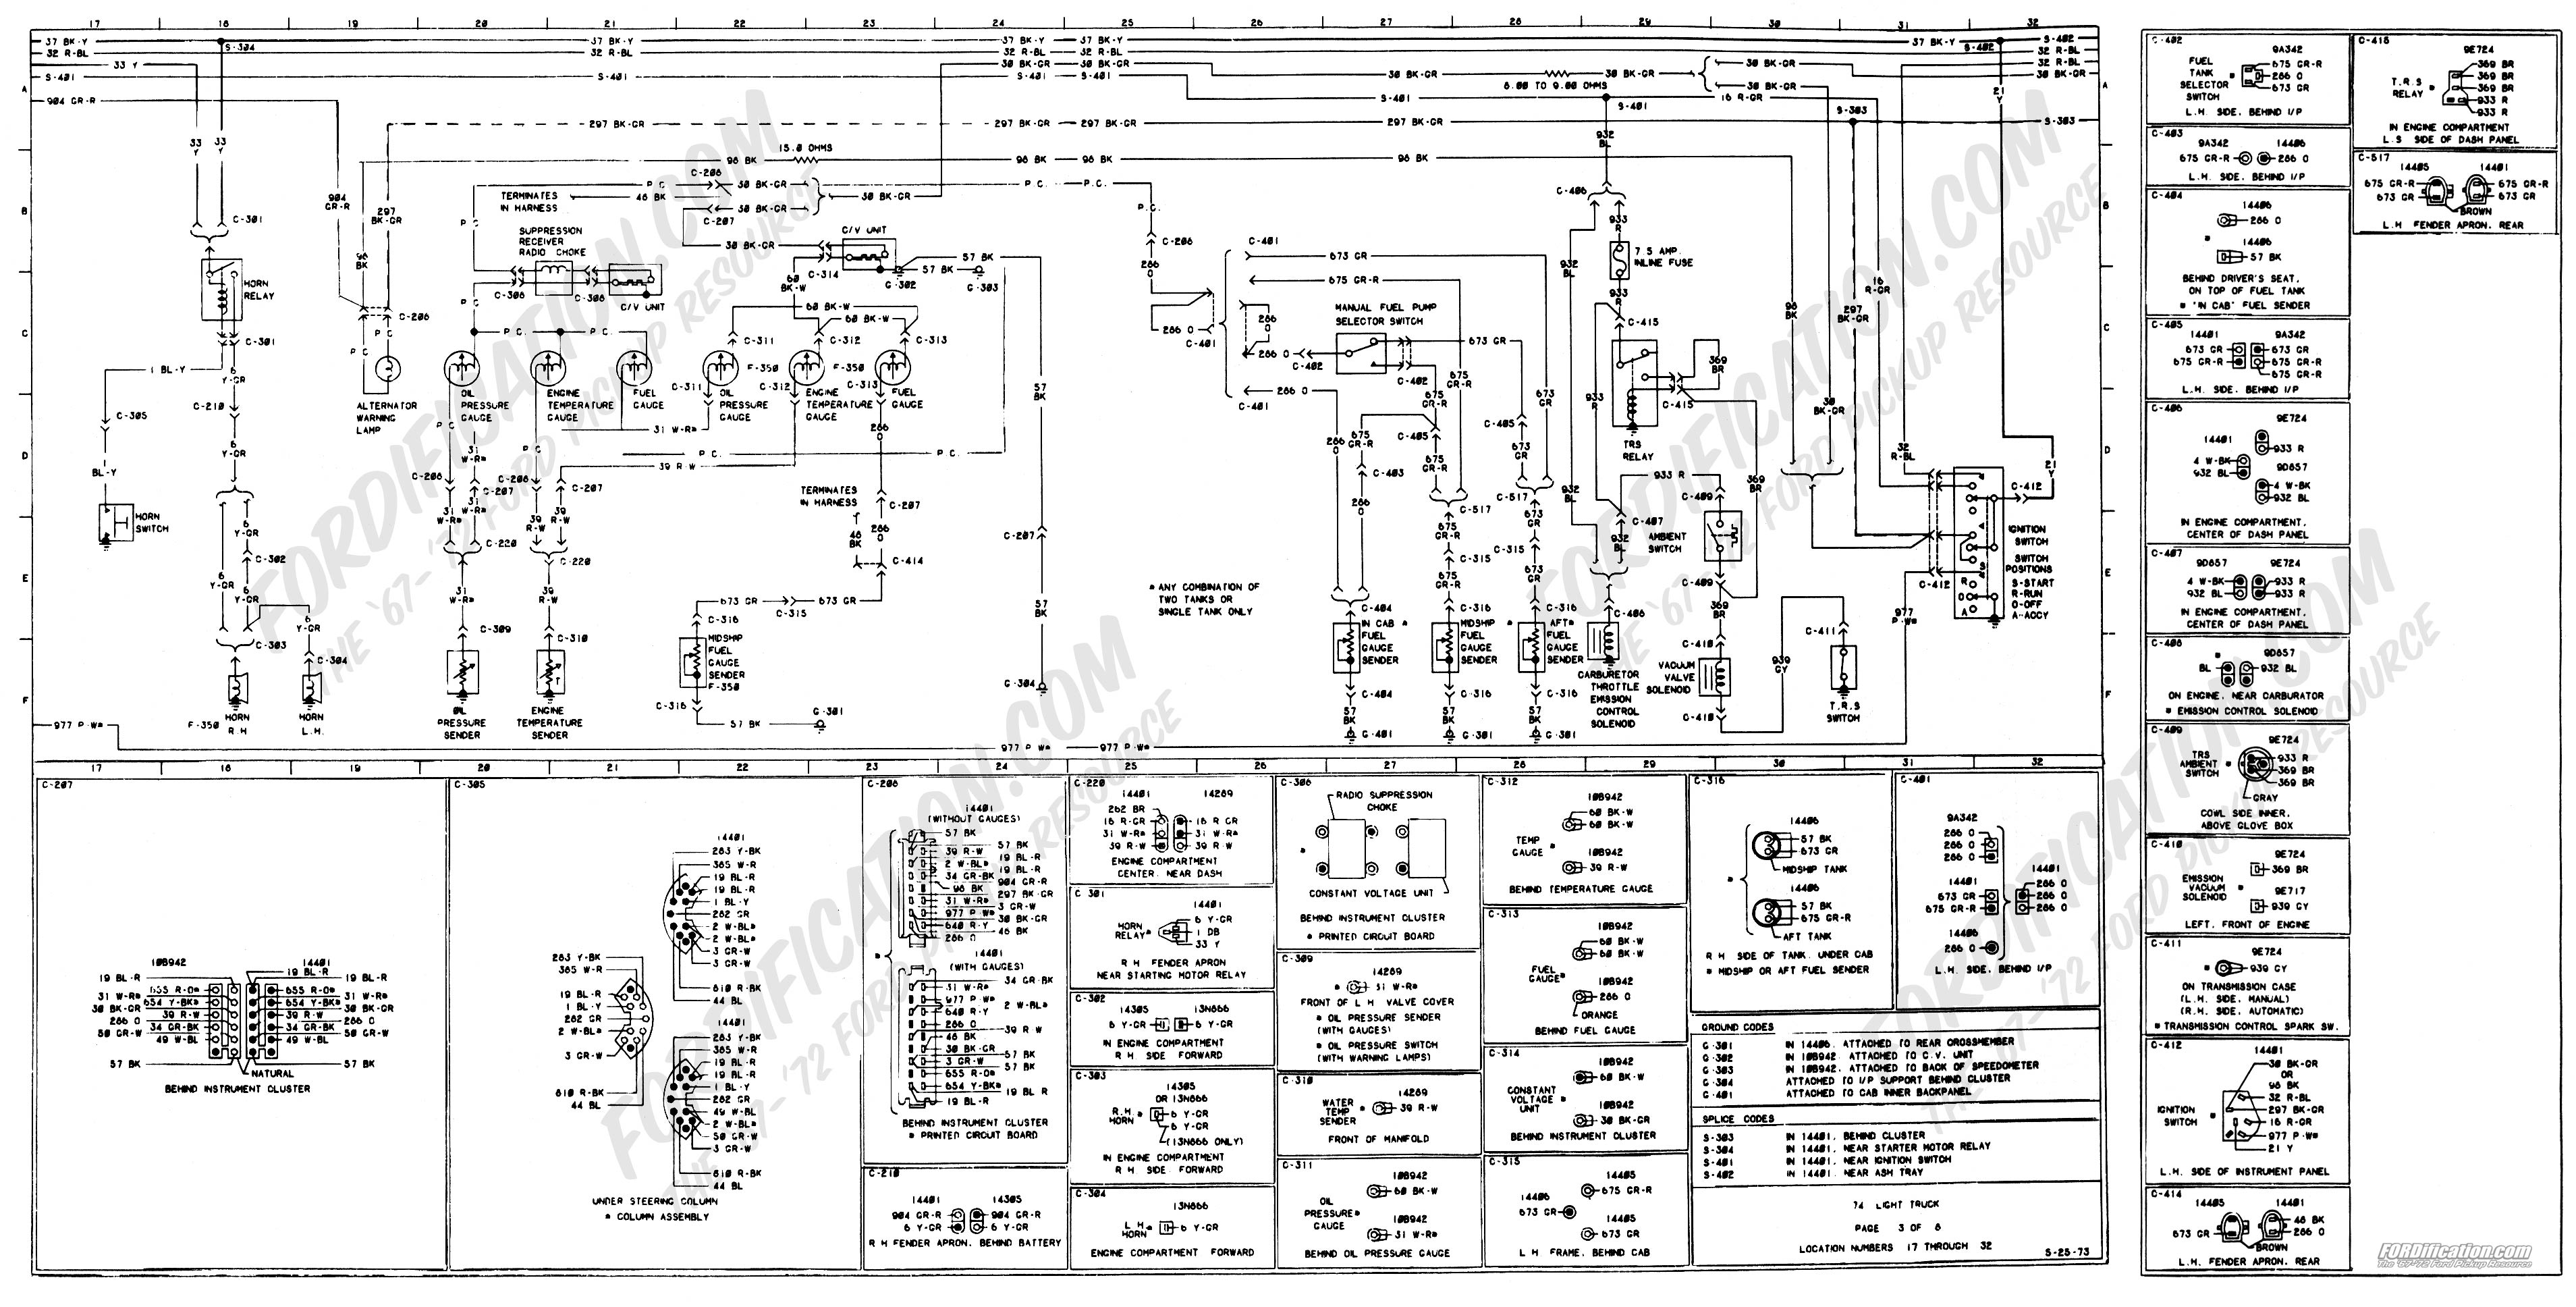 wiring_74master_3of8 1973 1979 ford truck wiring diagrams & schematics fordification net 03 f350 wiring diagram at bakdesigns.co